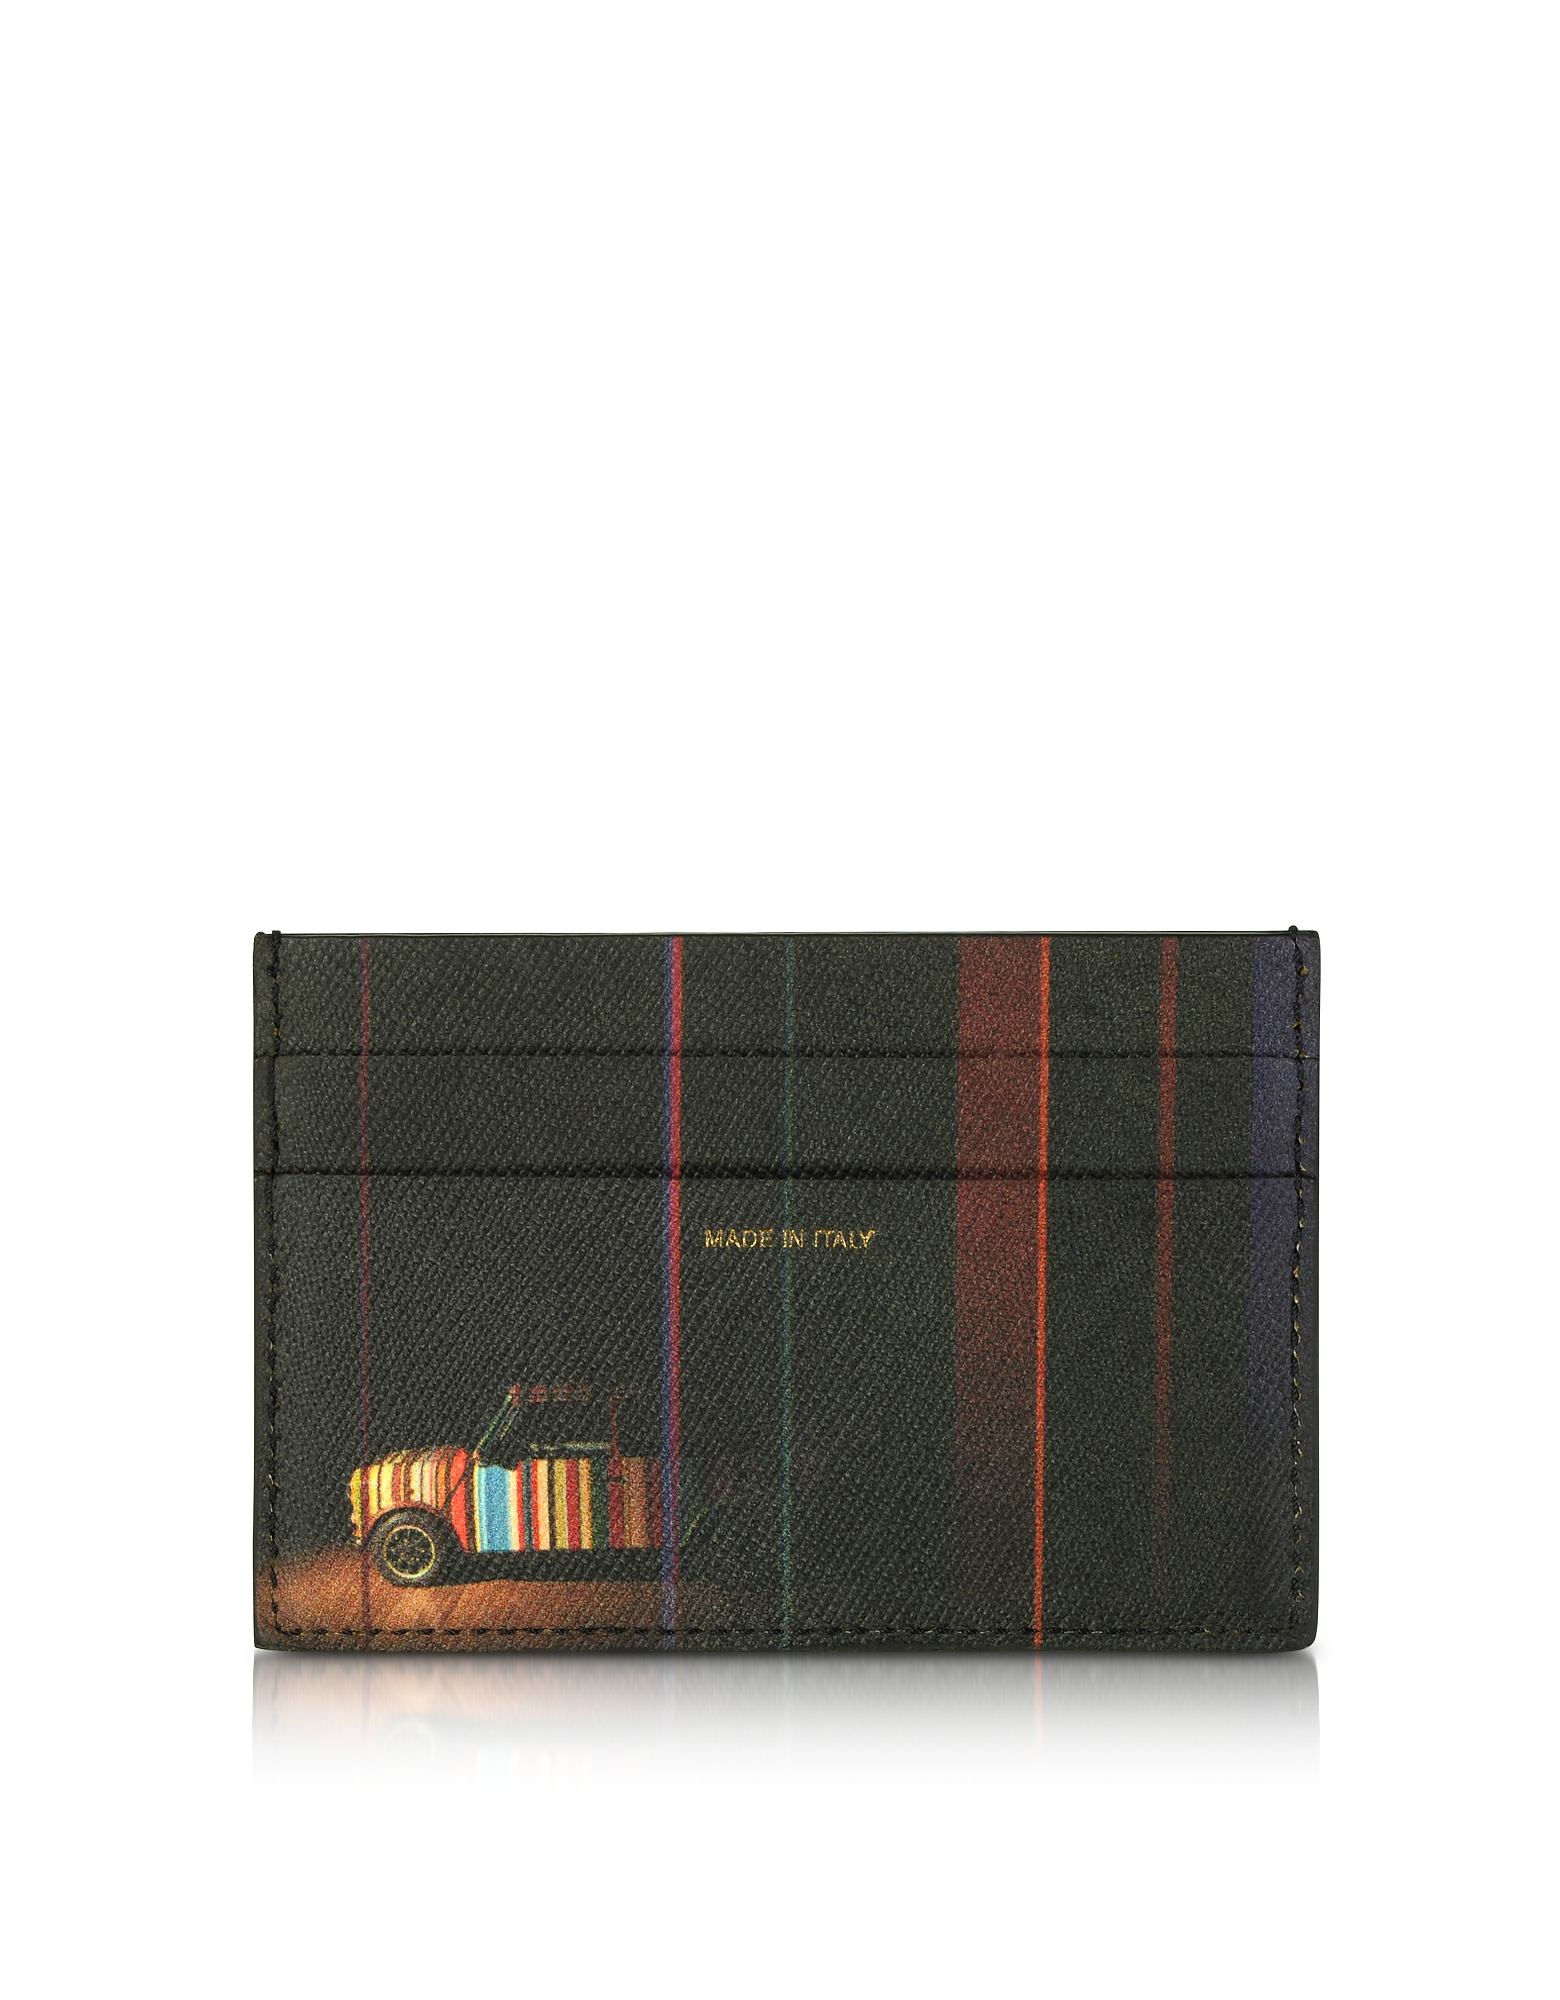 Paul Smith Wallets, Black Mini Print Saffiano Leather Credit Card Holder